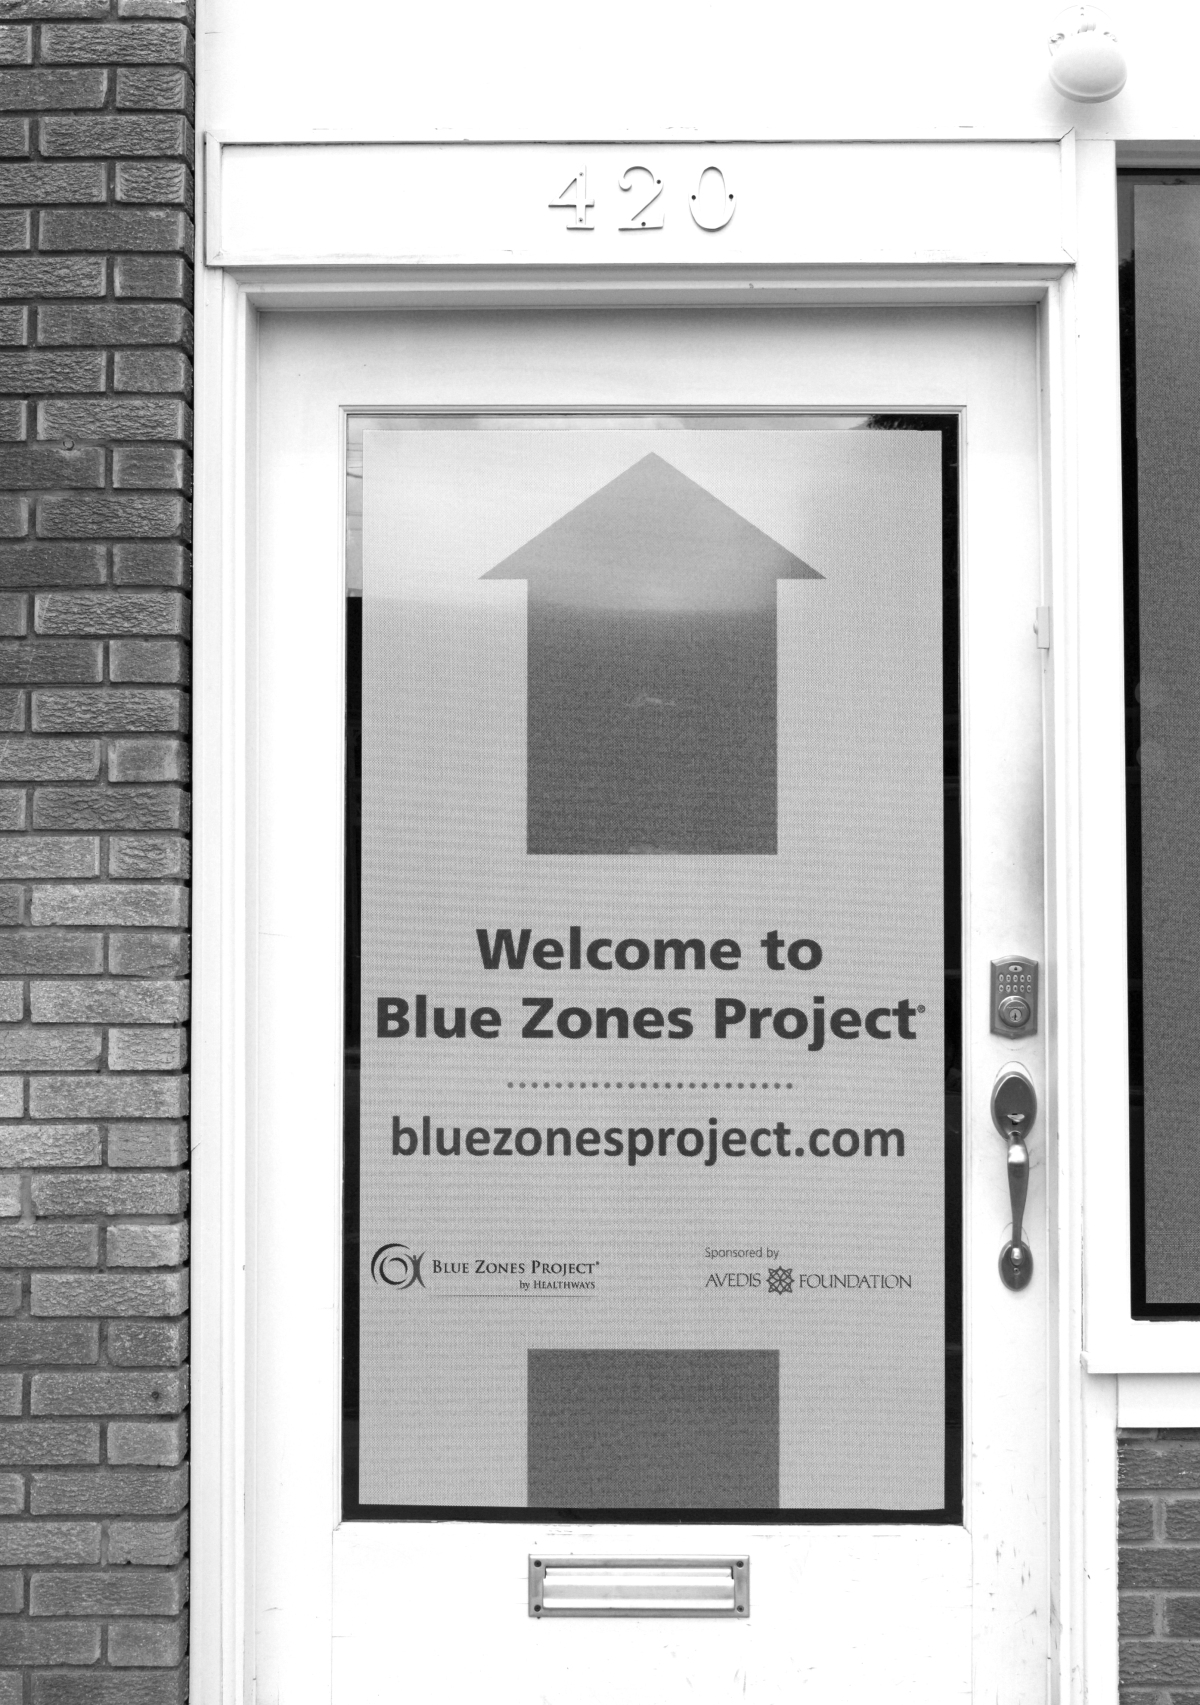 Blue Zones Project continues to better Shawnee